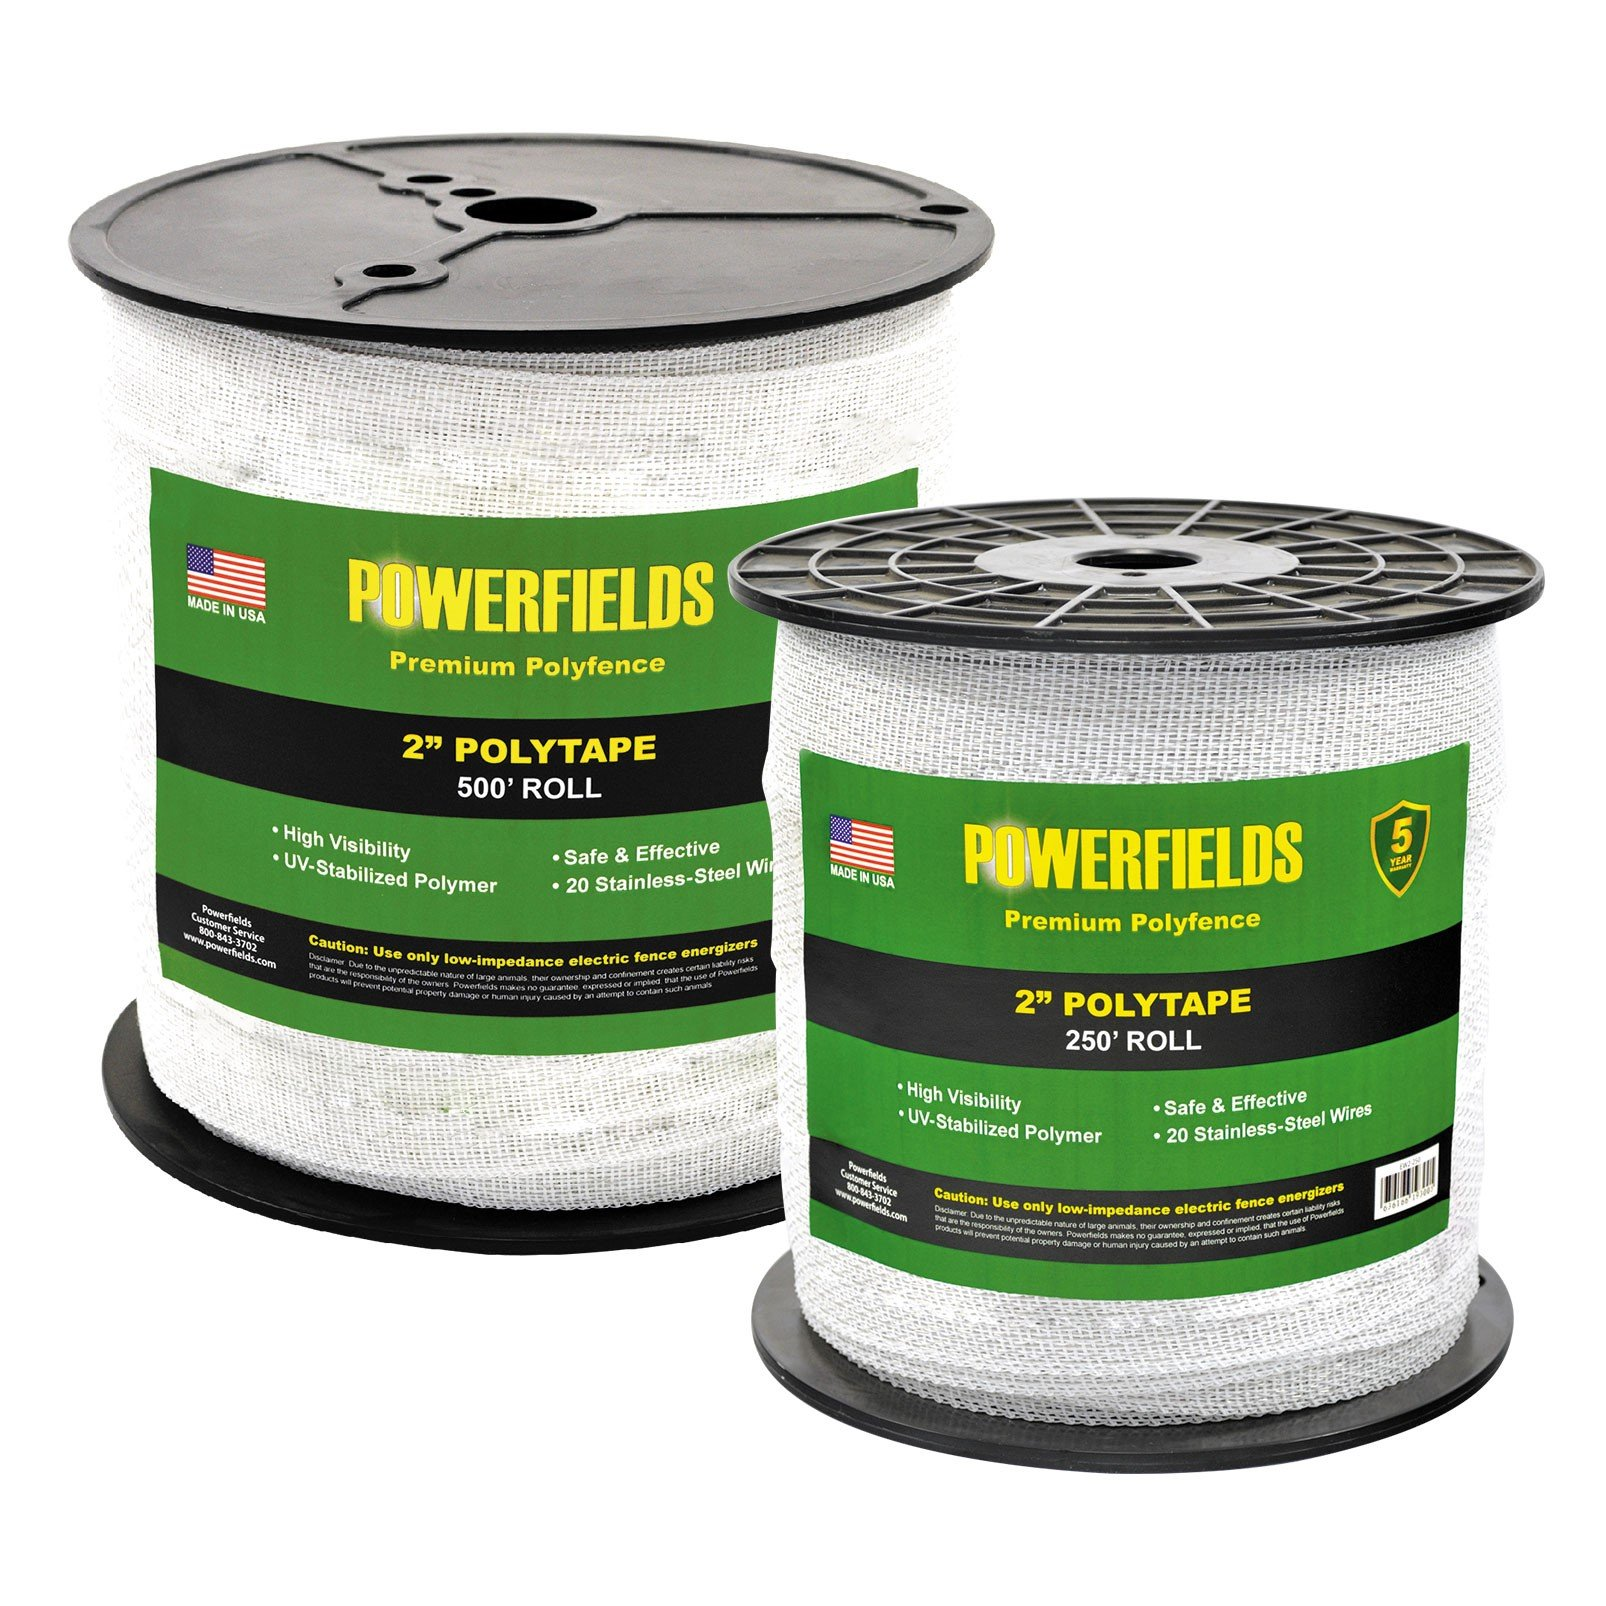 2 Polytape Powerfields High Quality Electric Fence Joining Fencing Wire Ew2 250 And 500 2016